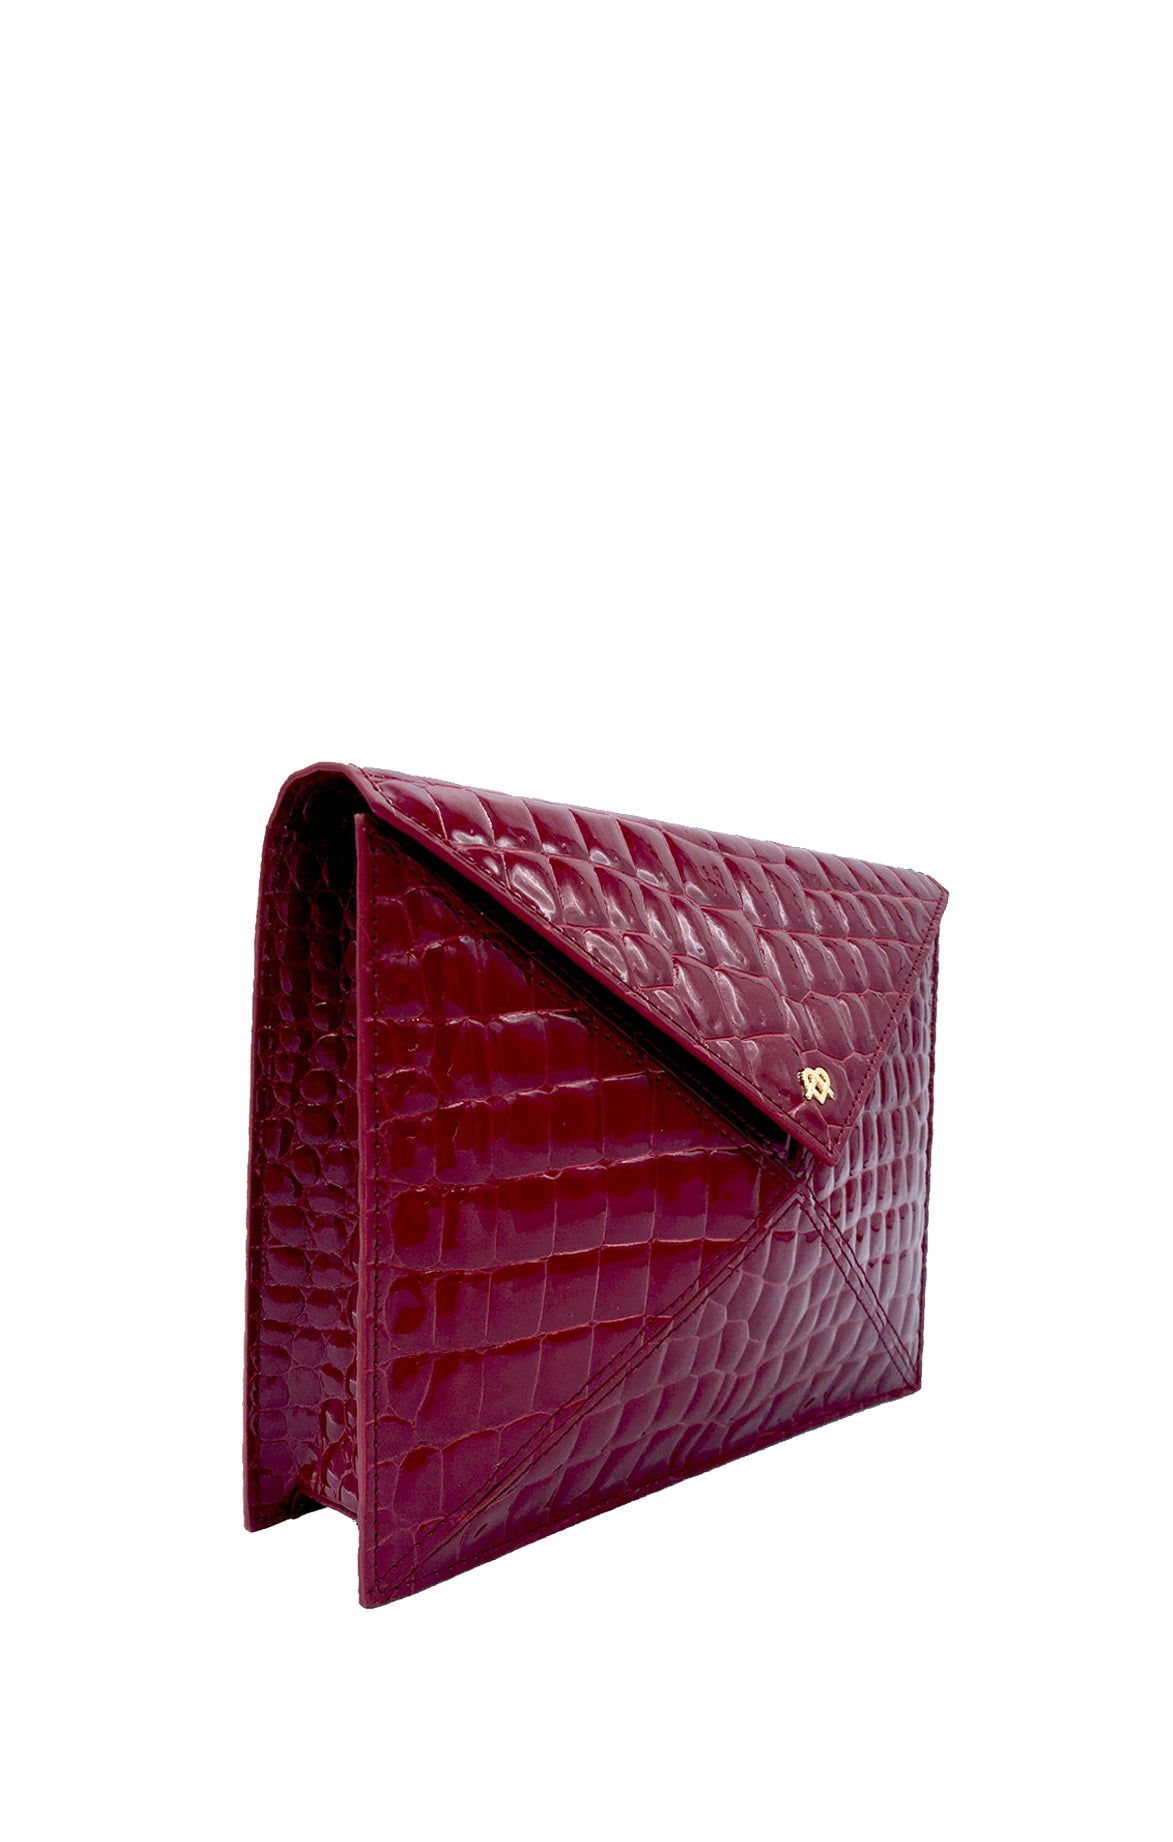 About Last Night Burgundy Clutch